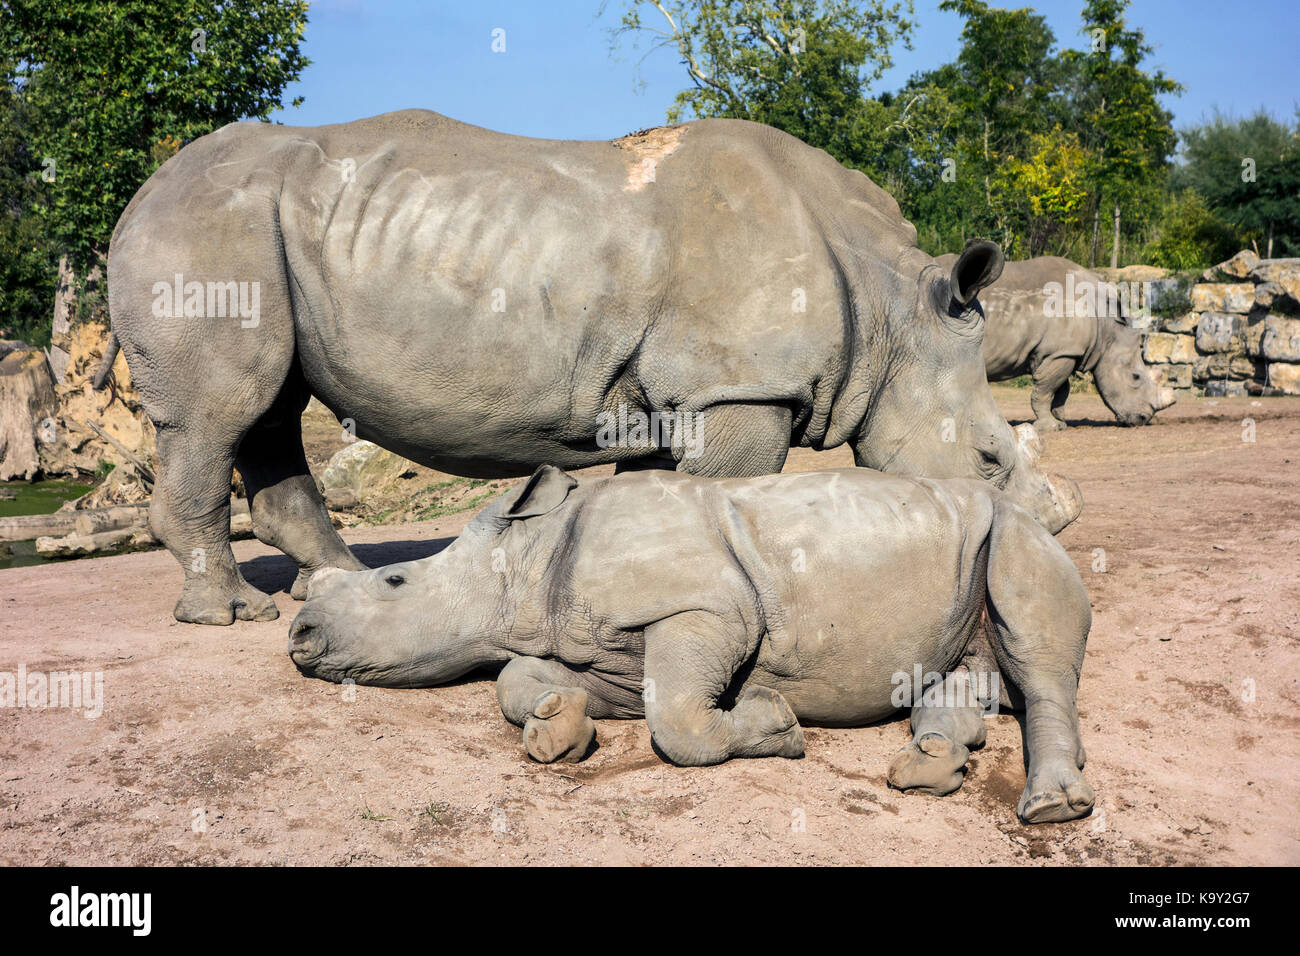 White rhinoceros family / white rhinos (Ceratotherium simum) in zoo with cut horns as precaution against theft - Stock Image